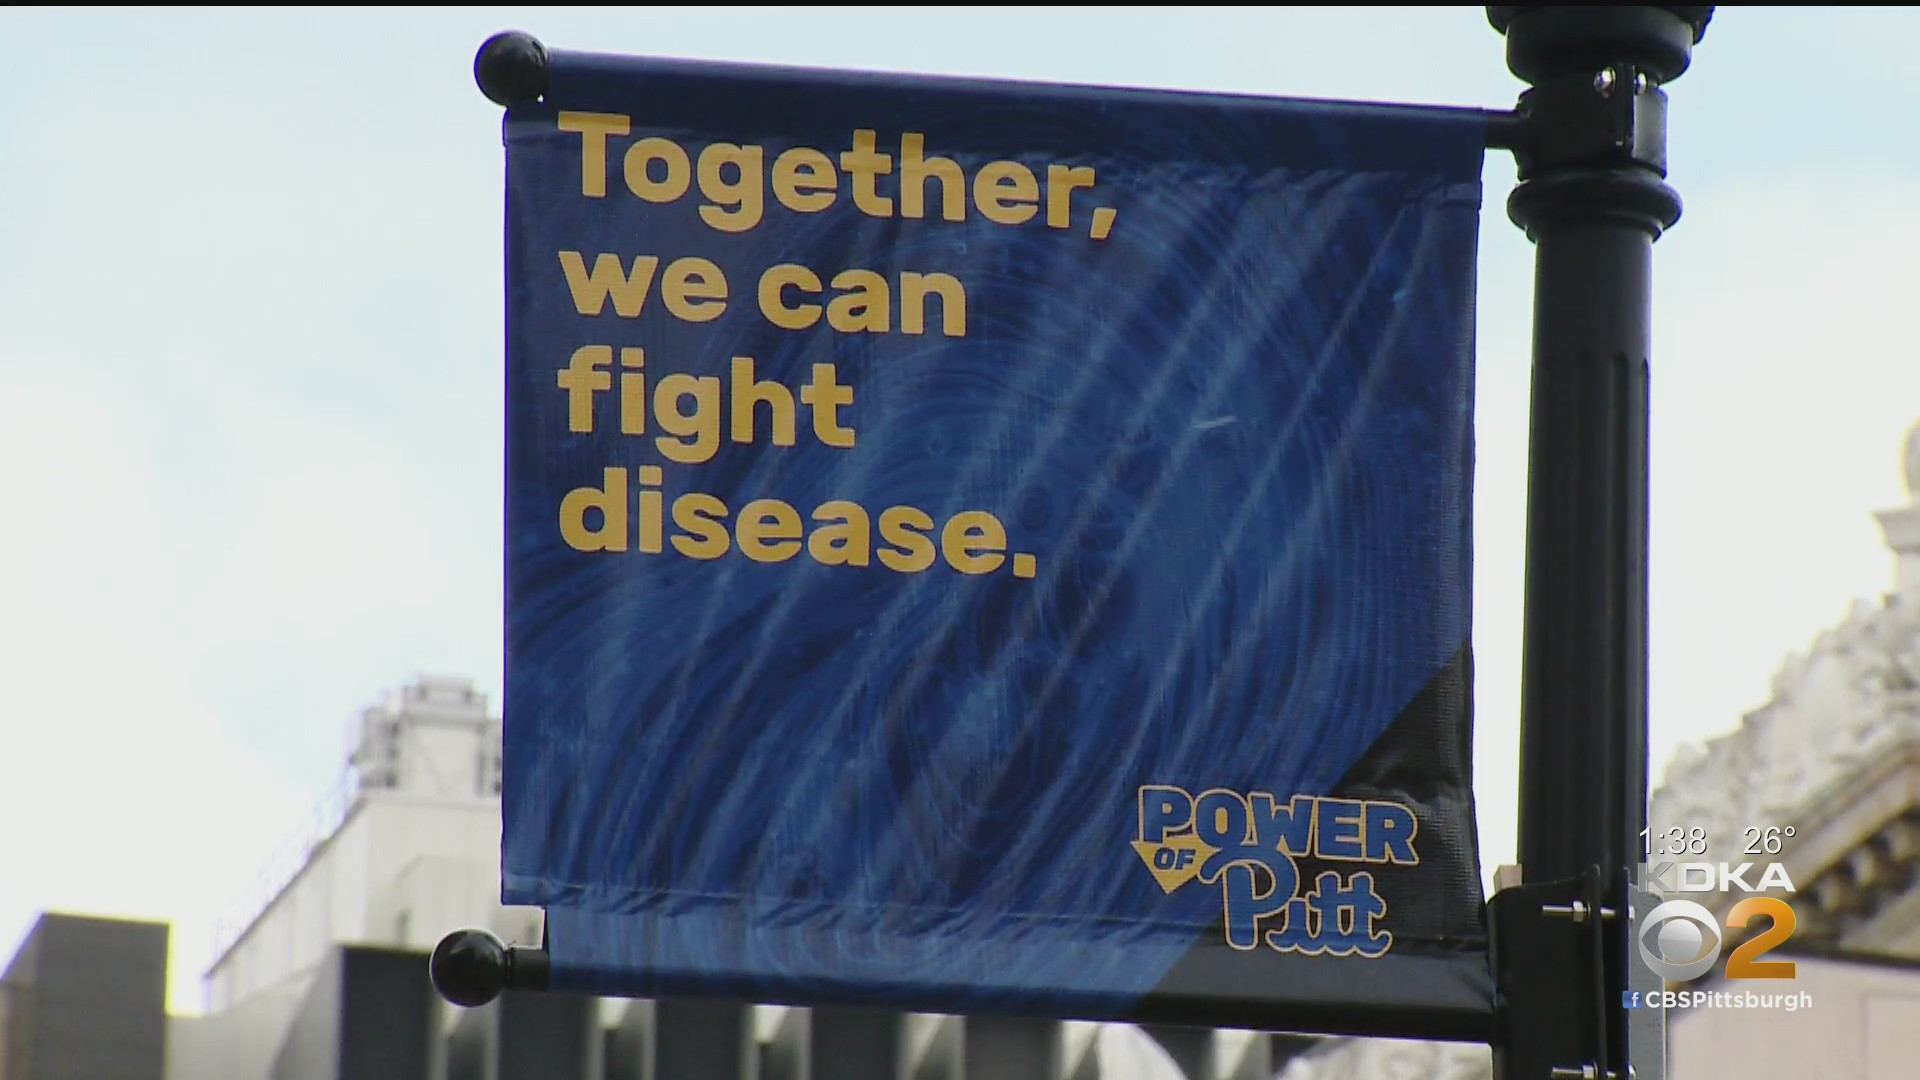 news.yahoo.com: University Of Pittsburgh Set To Begin Vaccinating Some Students